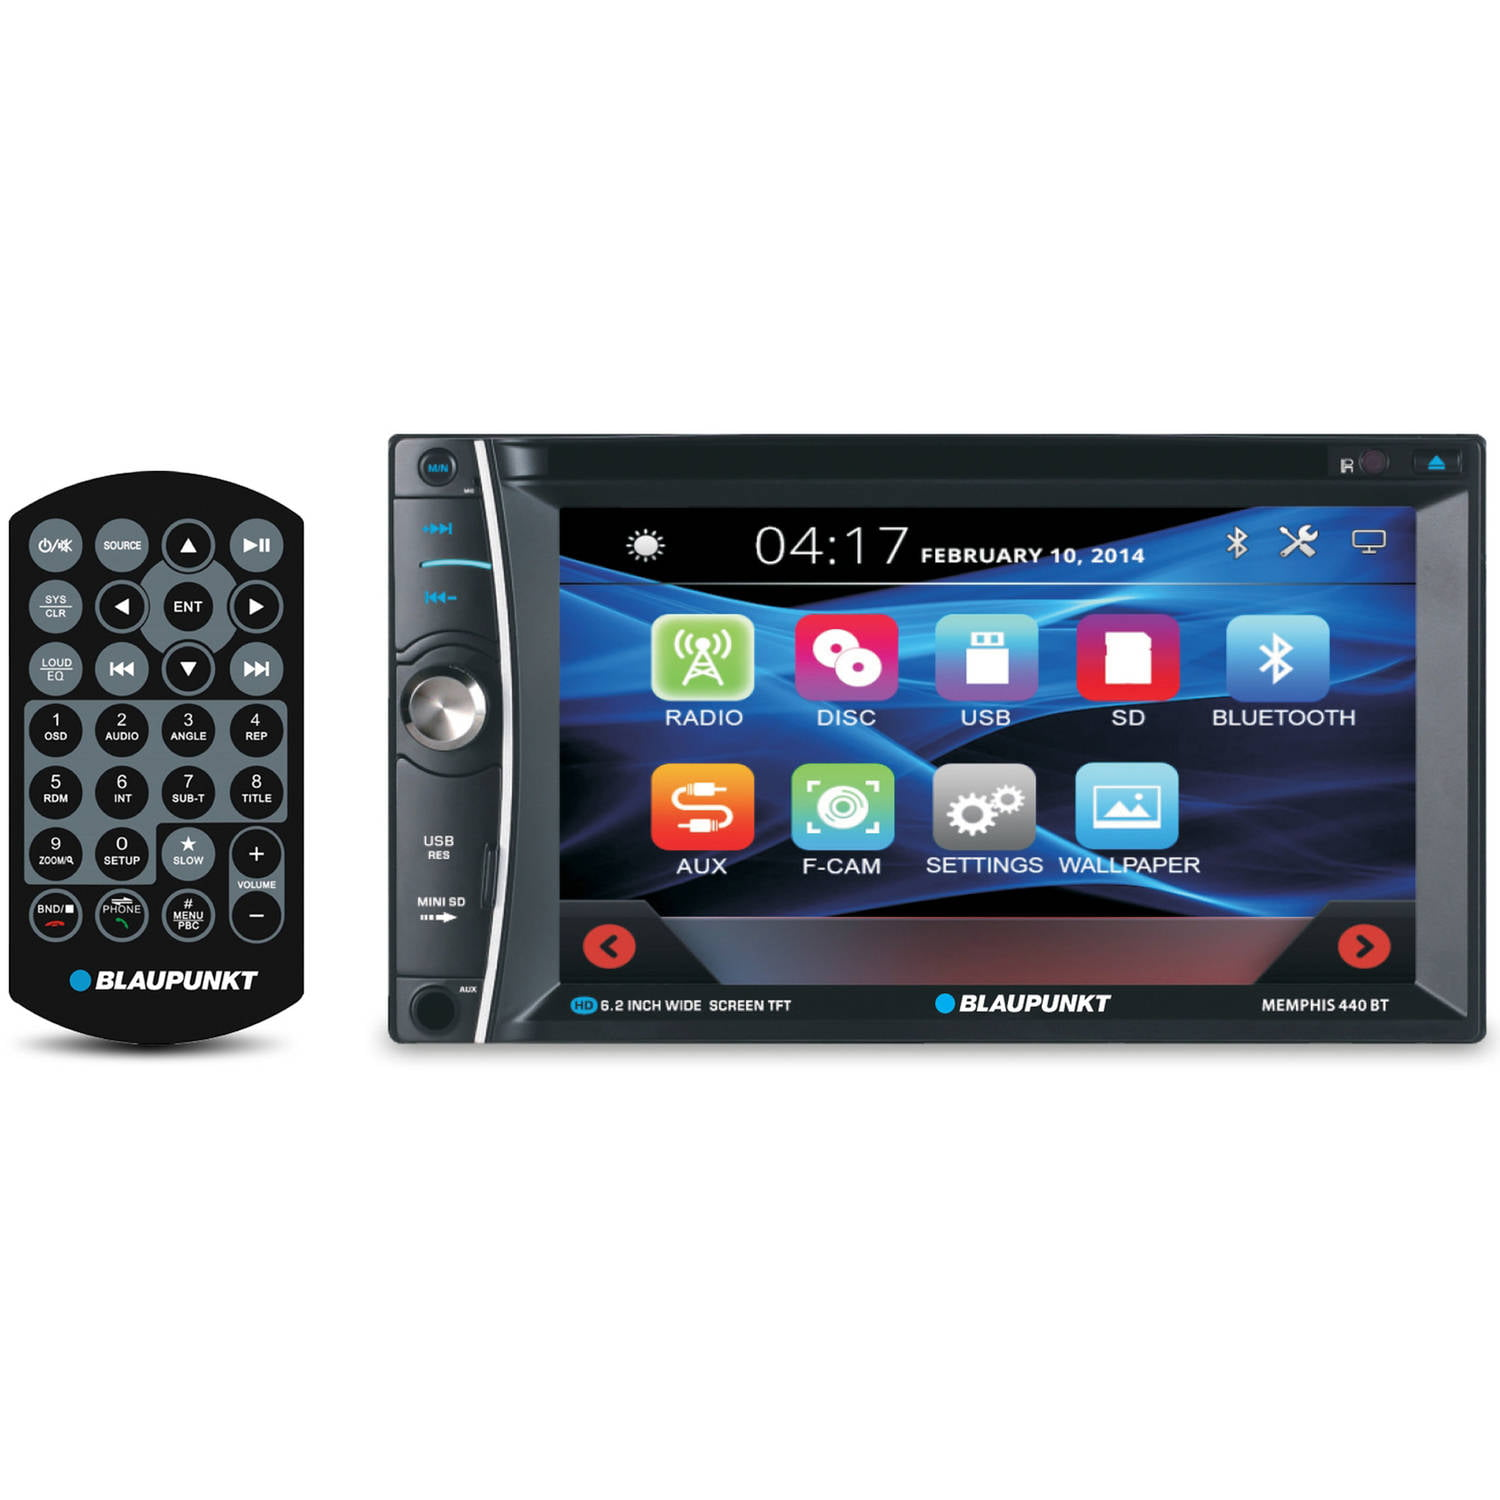 AXD1507 PDP4360HD Replacement Remote Control for Pioneer PDP5061HD PDP5060HD